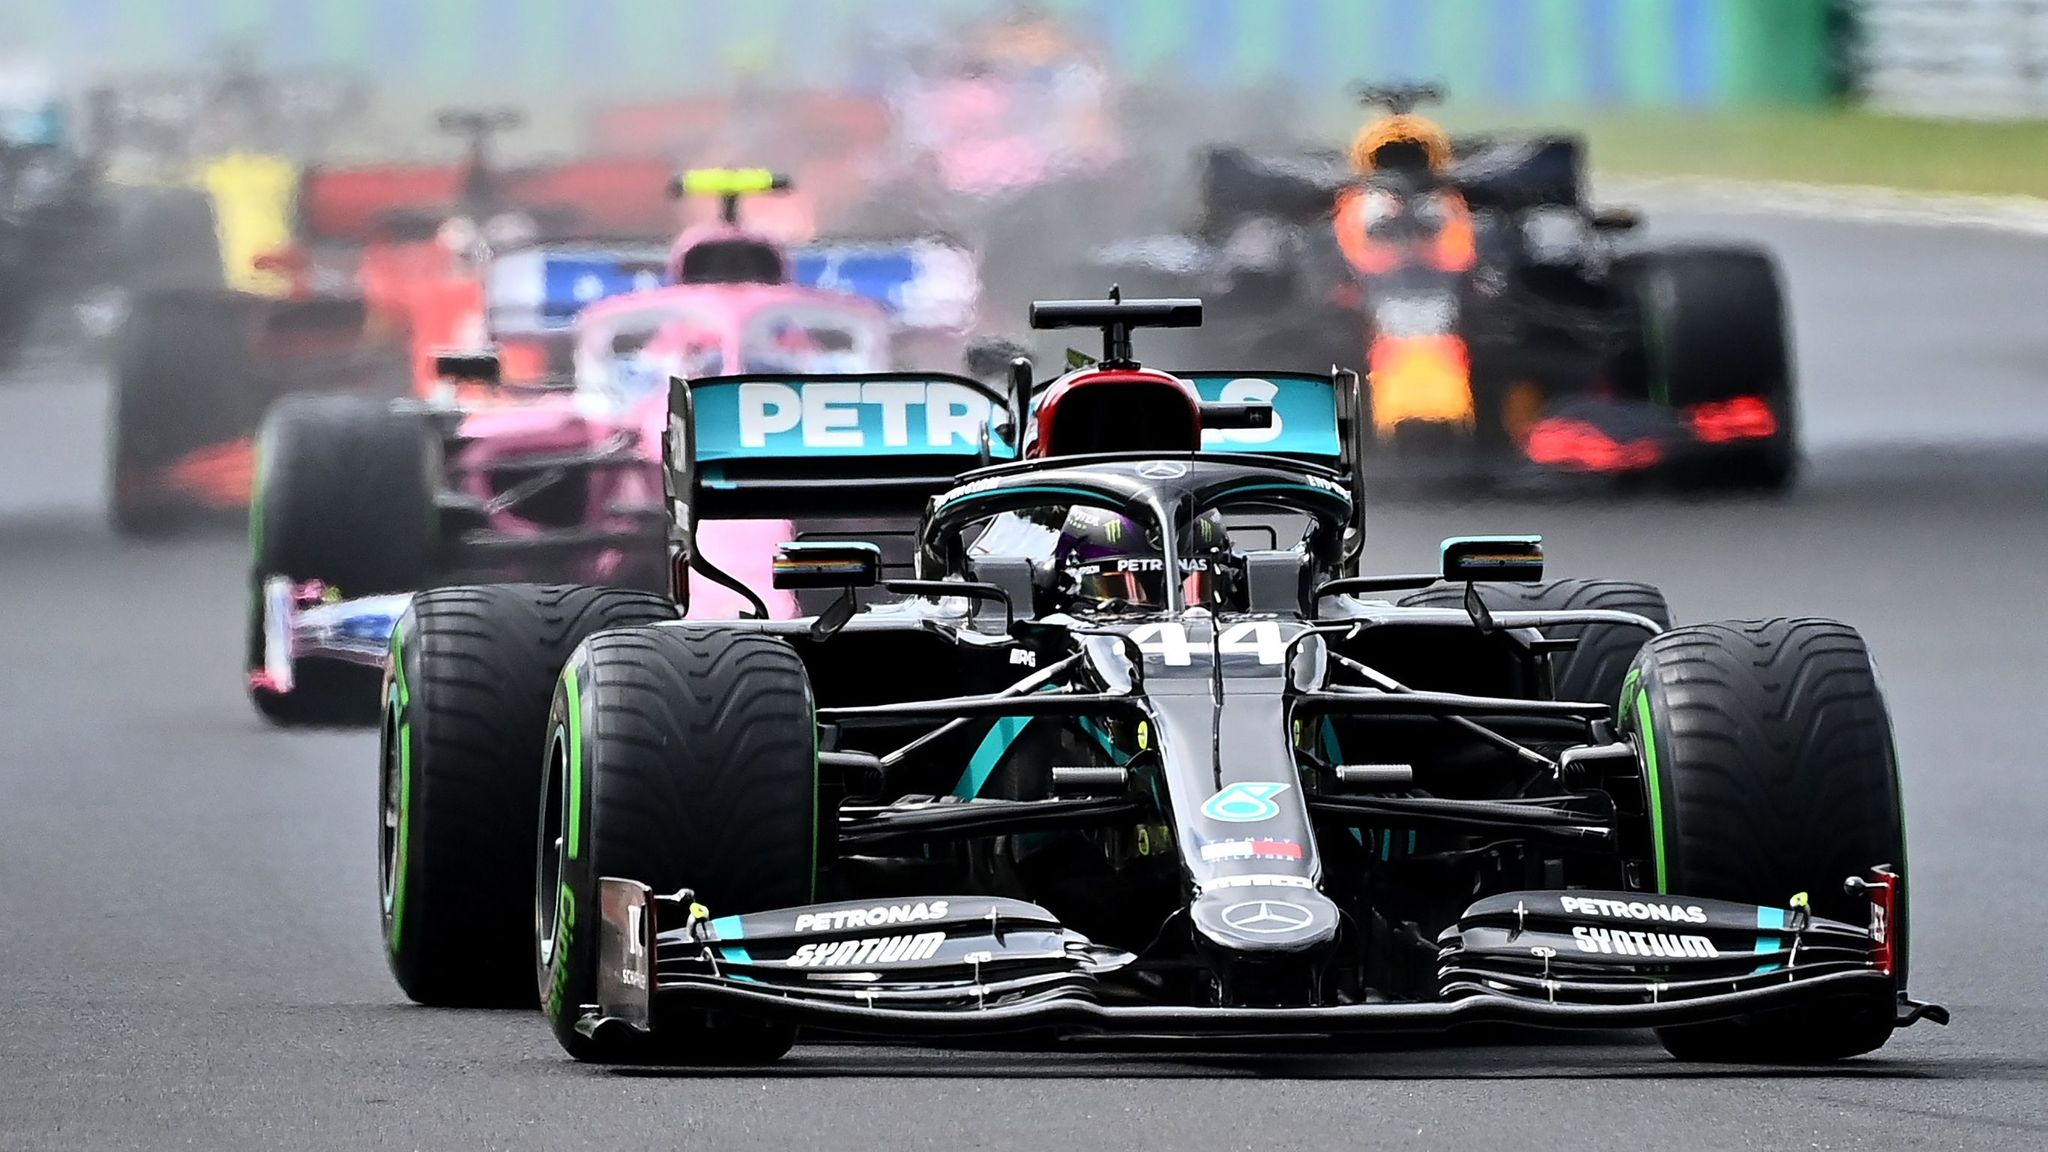 Nurburgring Portugal And Imola Races Added To F1 2020 Calendar F1 News